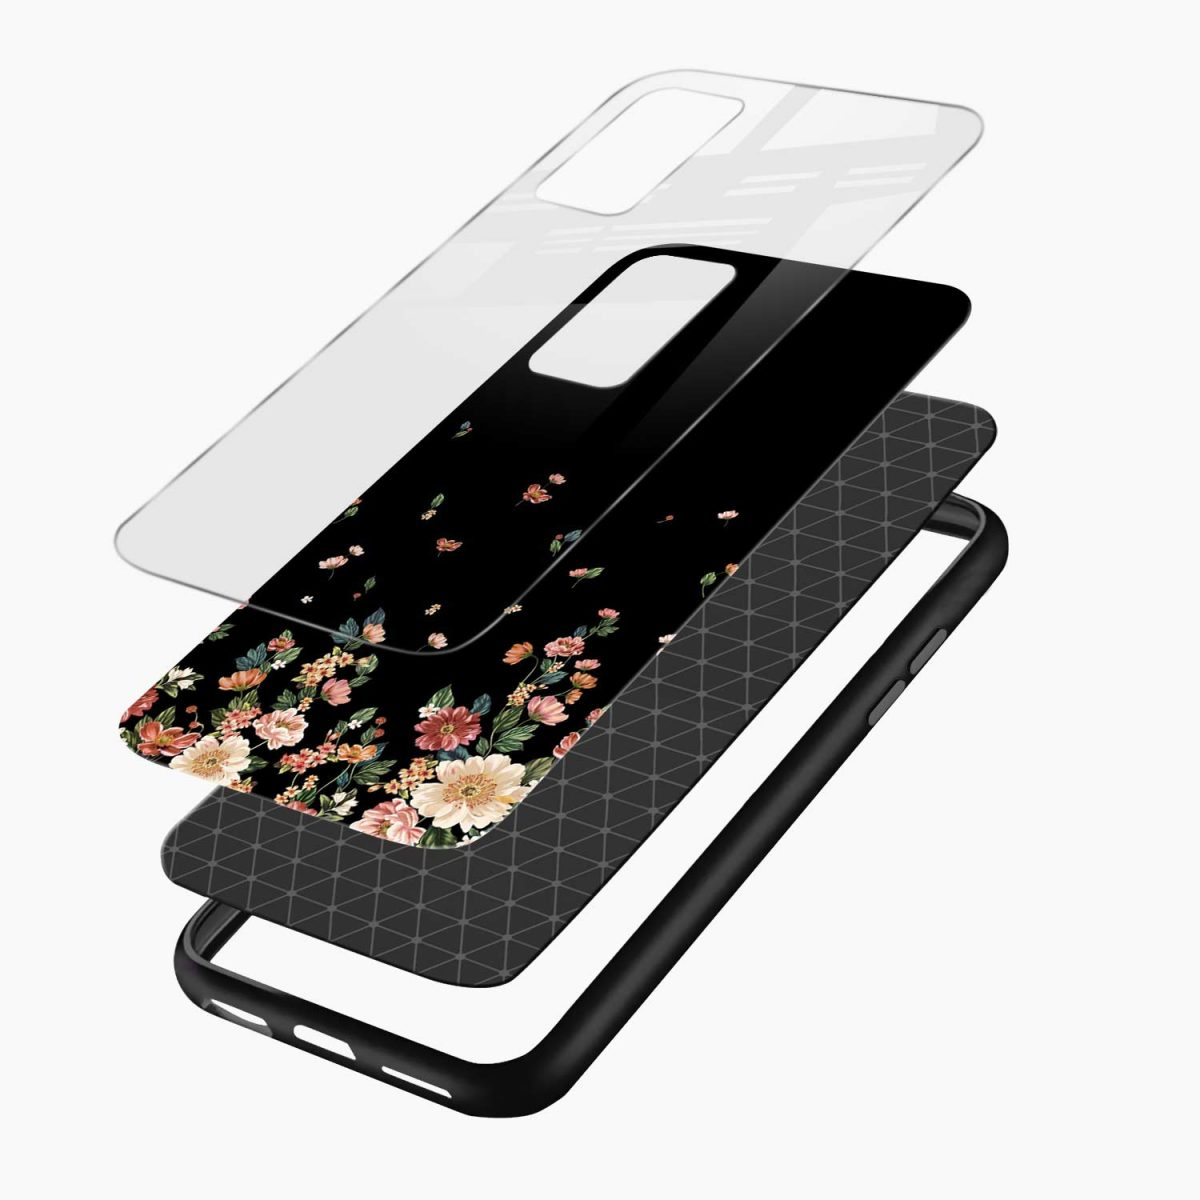 graceful floral black colored layers view samsung galaxy note20 ultra back cover